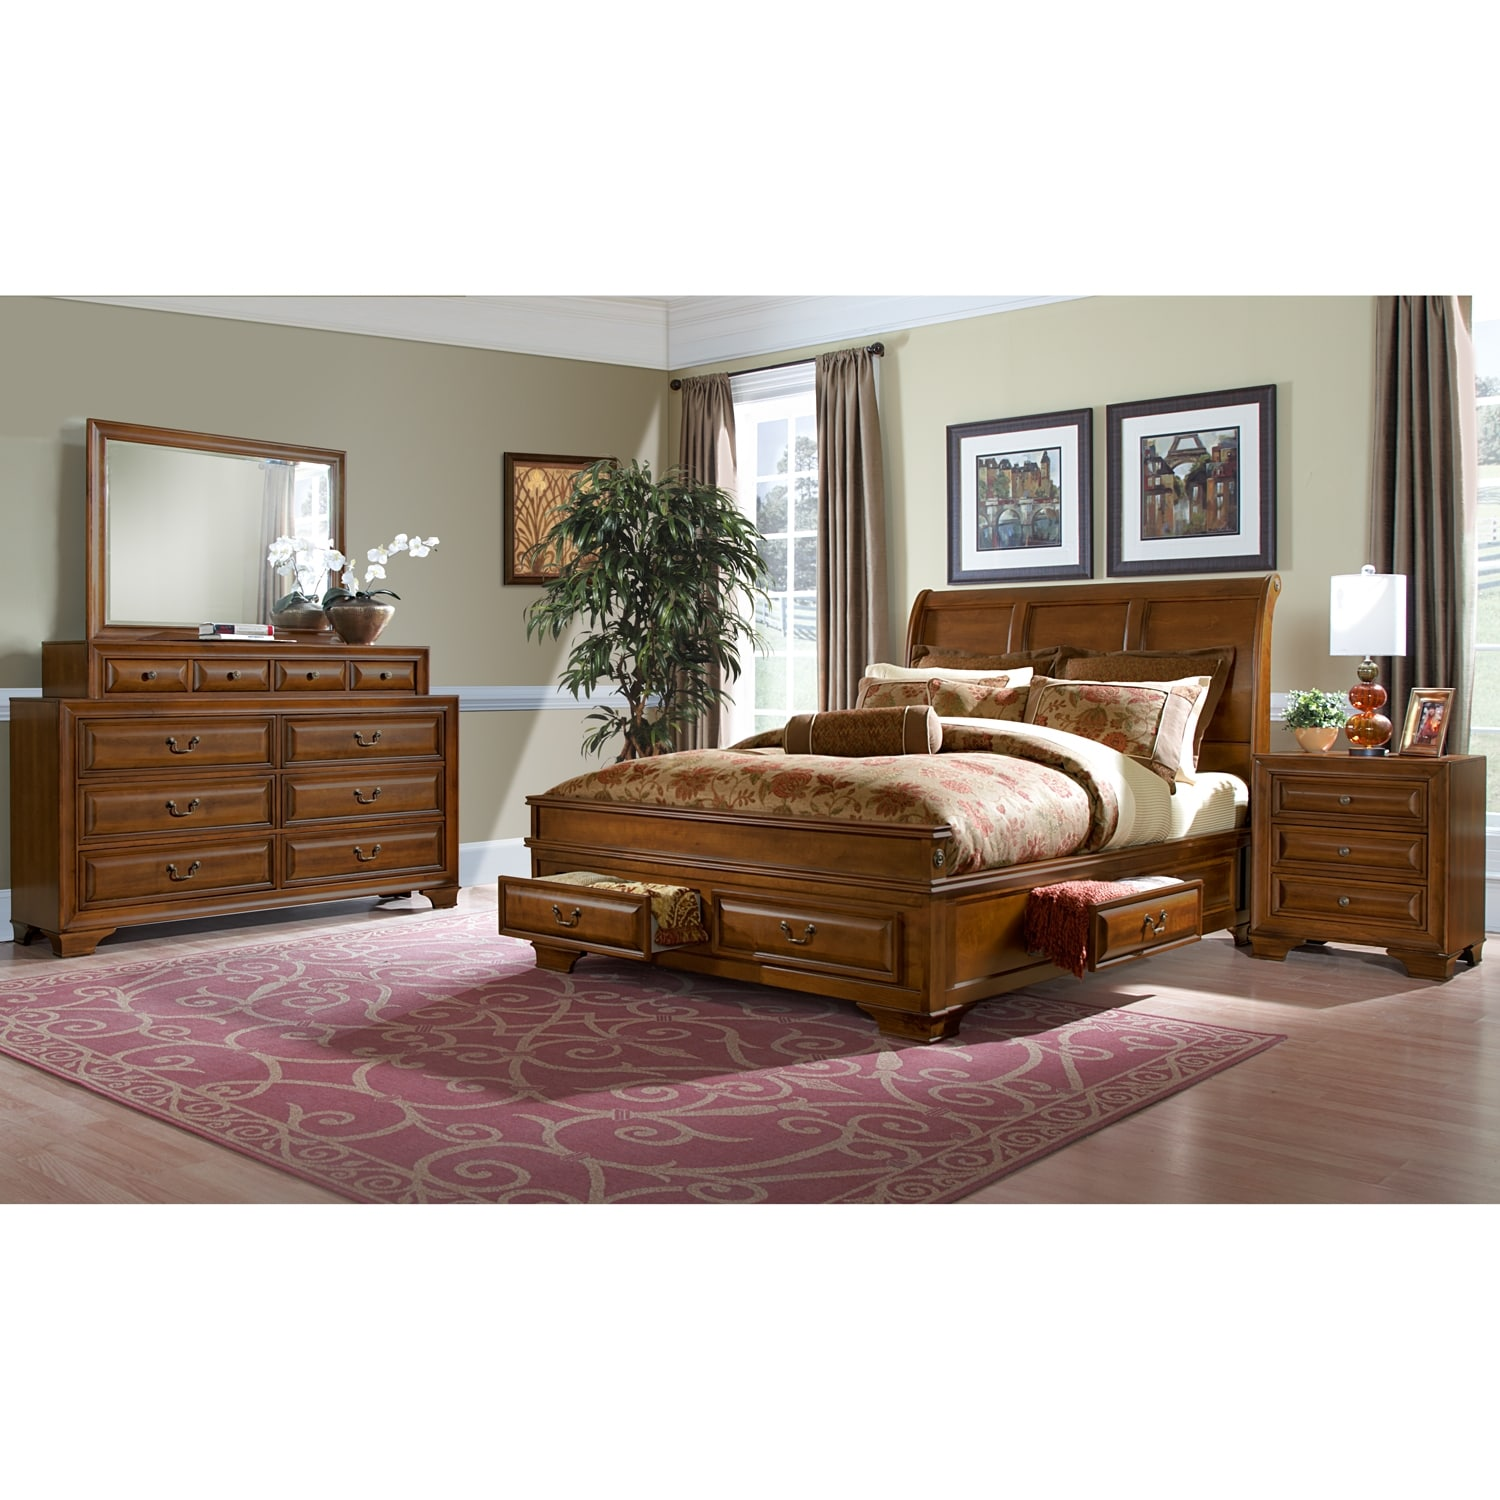 [Sanibelle 6 Pc. King Storage Bedroom]